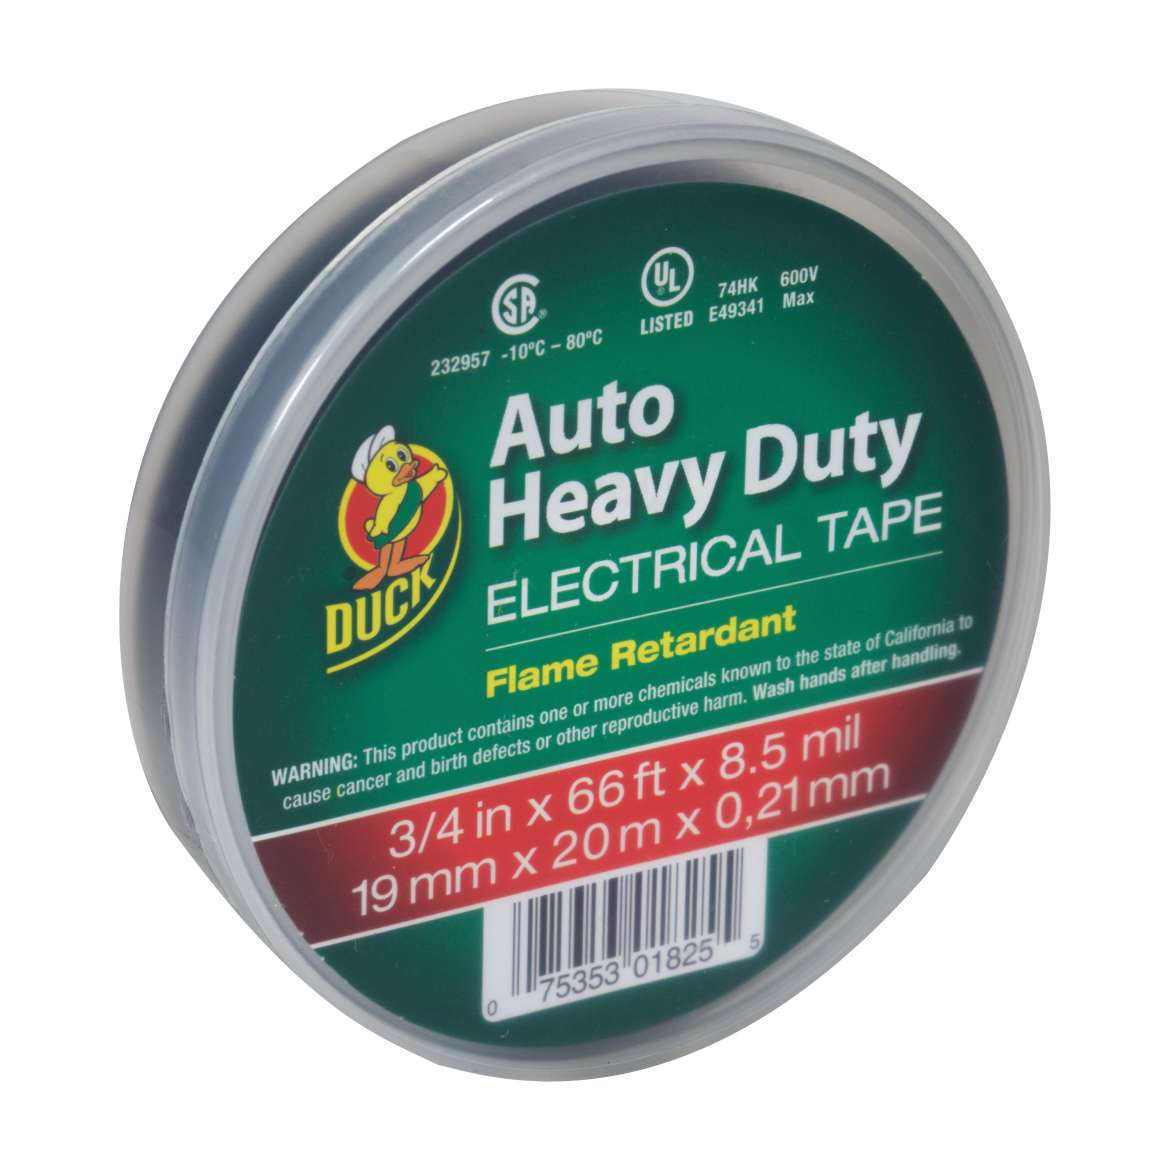 Duck® Brand Heavy Duty Auto Electrical Tape - Black, .75 in. x 66 ft. x 8.5 mil. Image